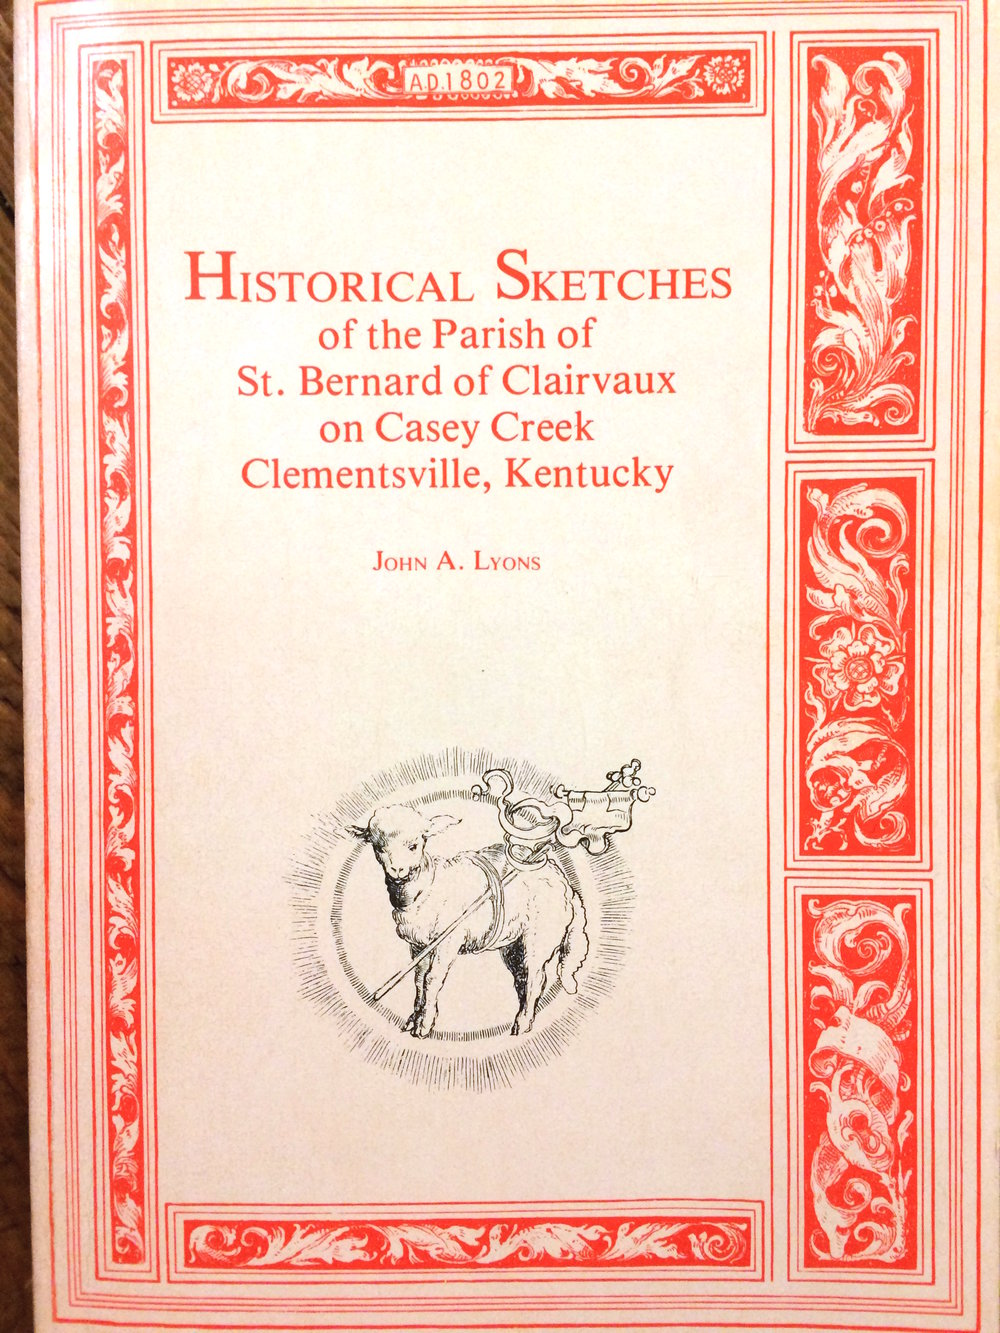 Historical Sketches of Case Creek